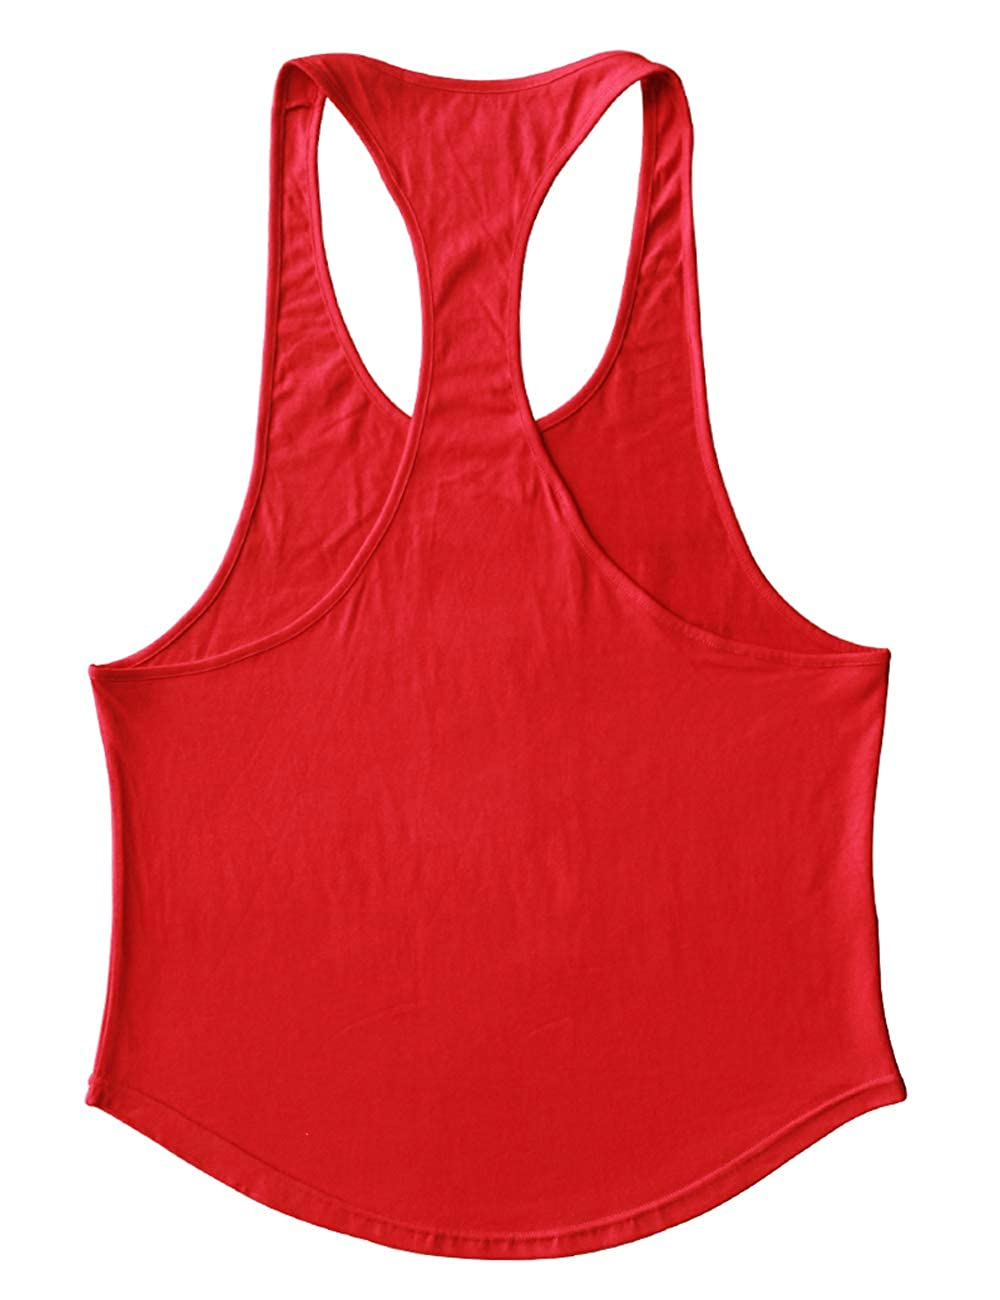 Mens Stringer Gym Bodybuilding Tank Tops Cotton for Workout with Arch Hem